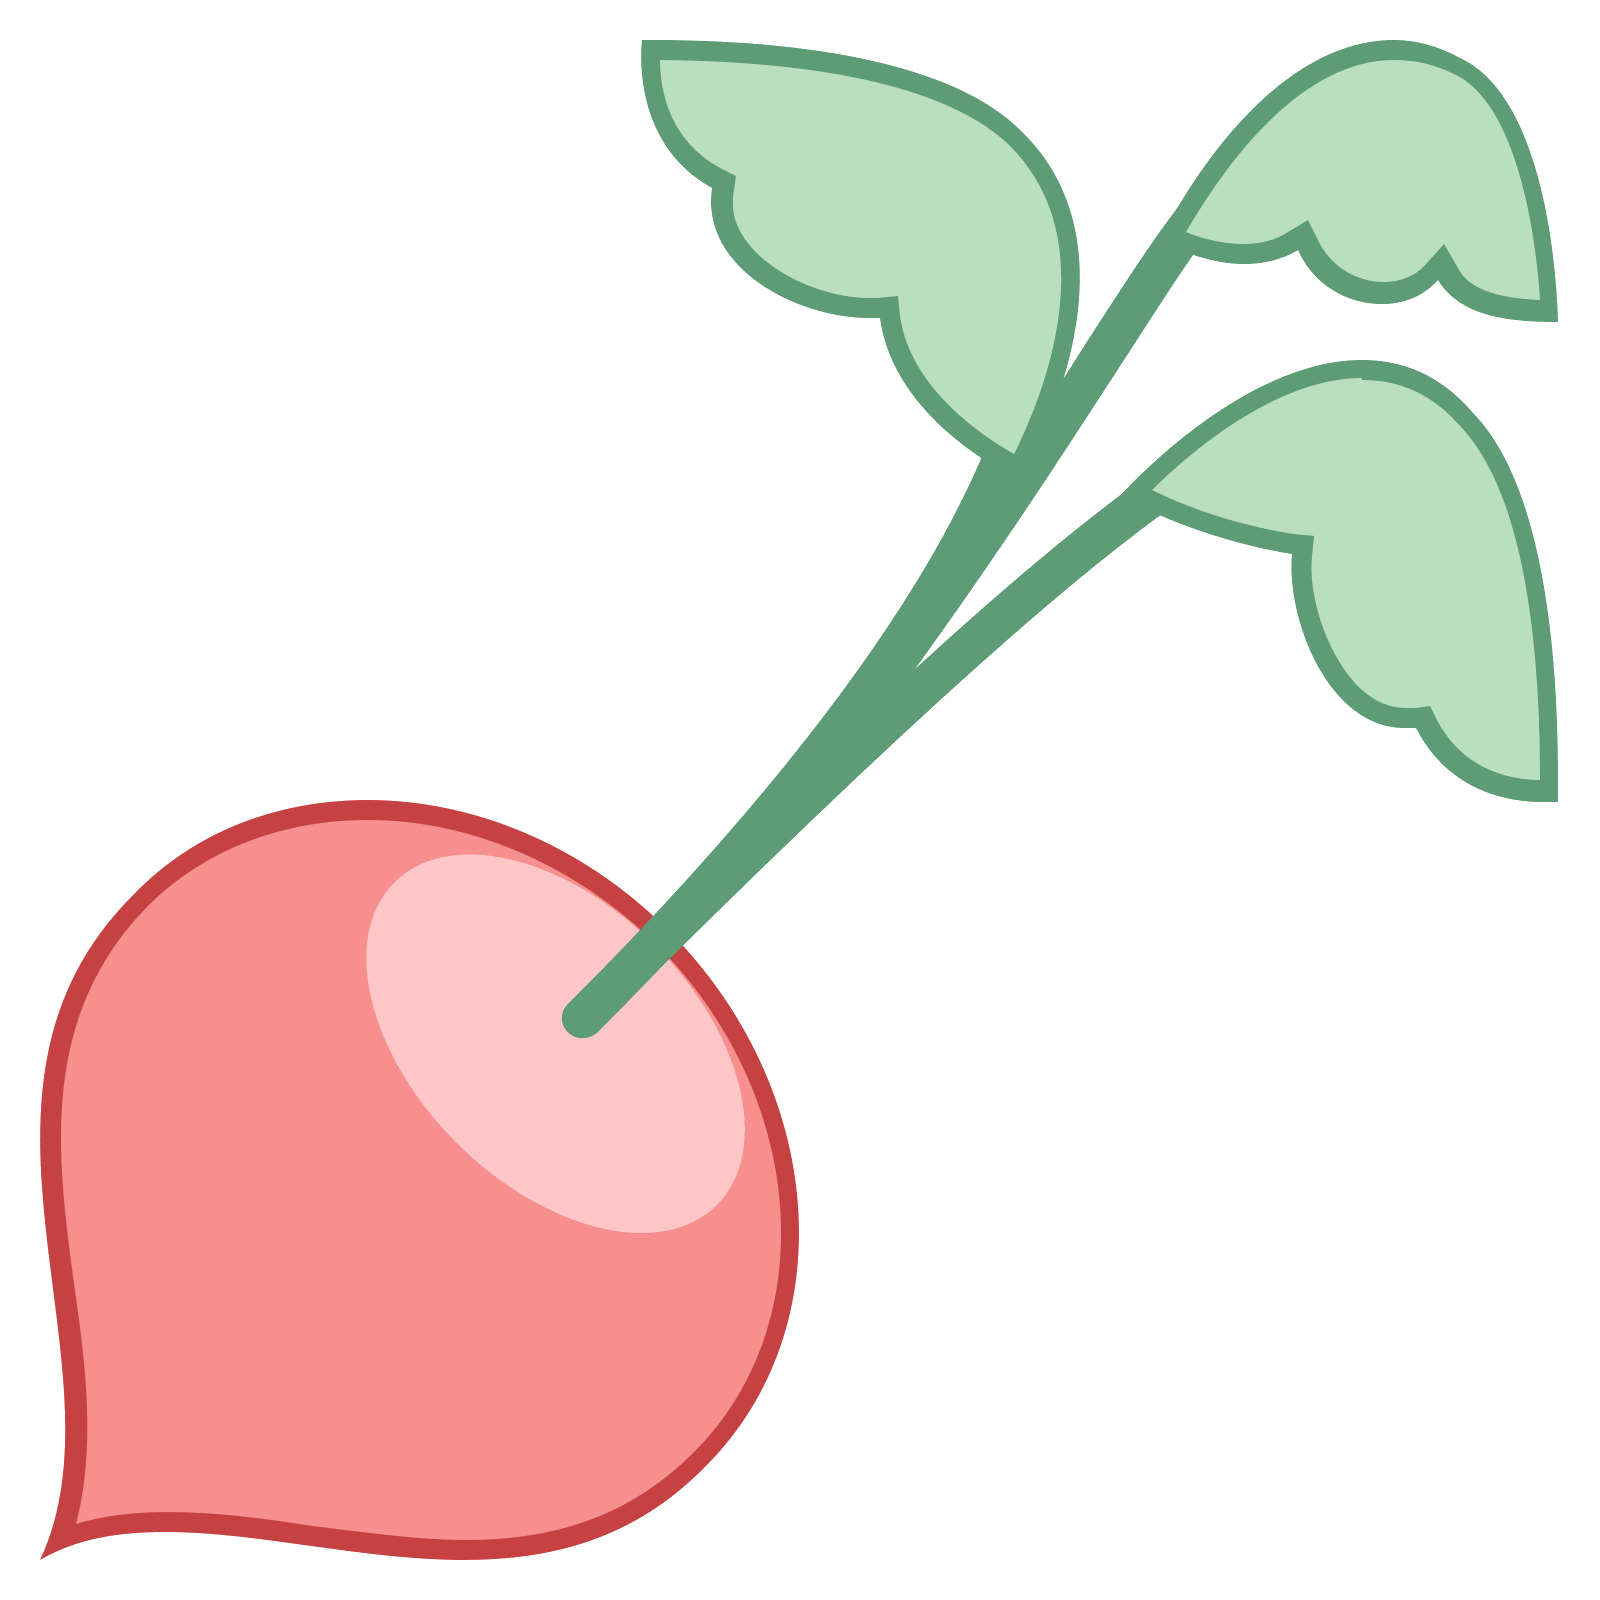 Radish vector root vegetable. Icon free download png